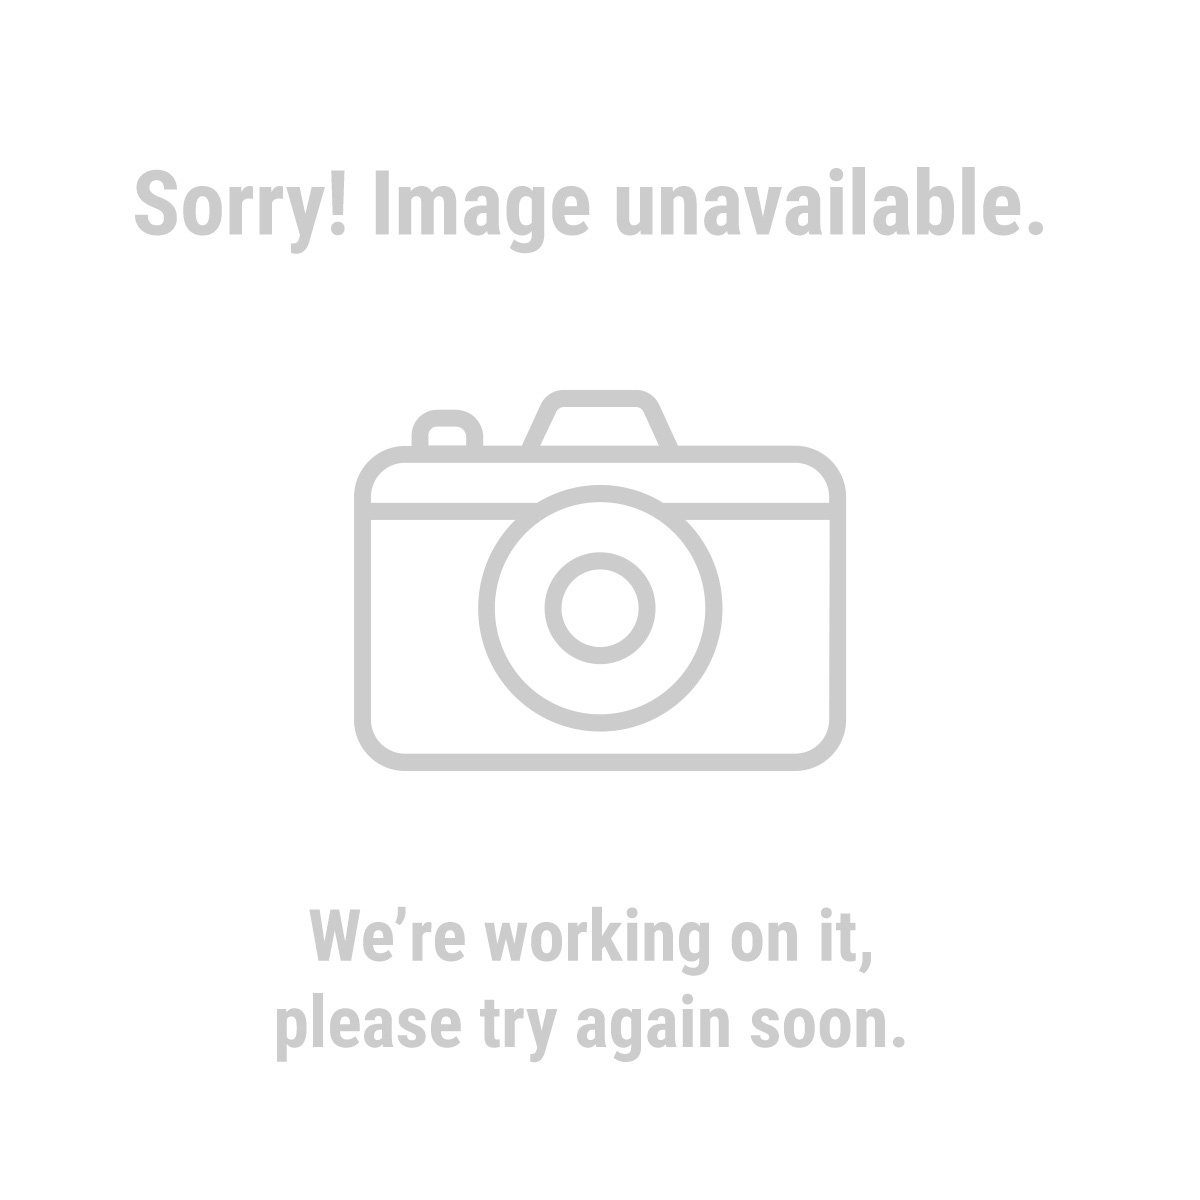 Chicago Electric Welding 61749 80 Amp-DC, 120 Volt, Inverter Stick Welder